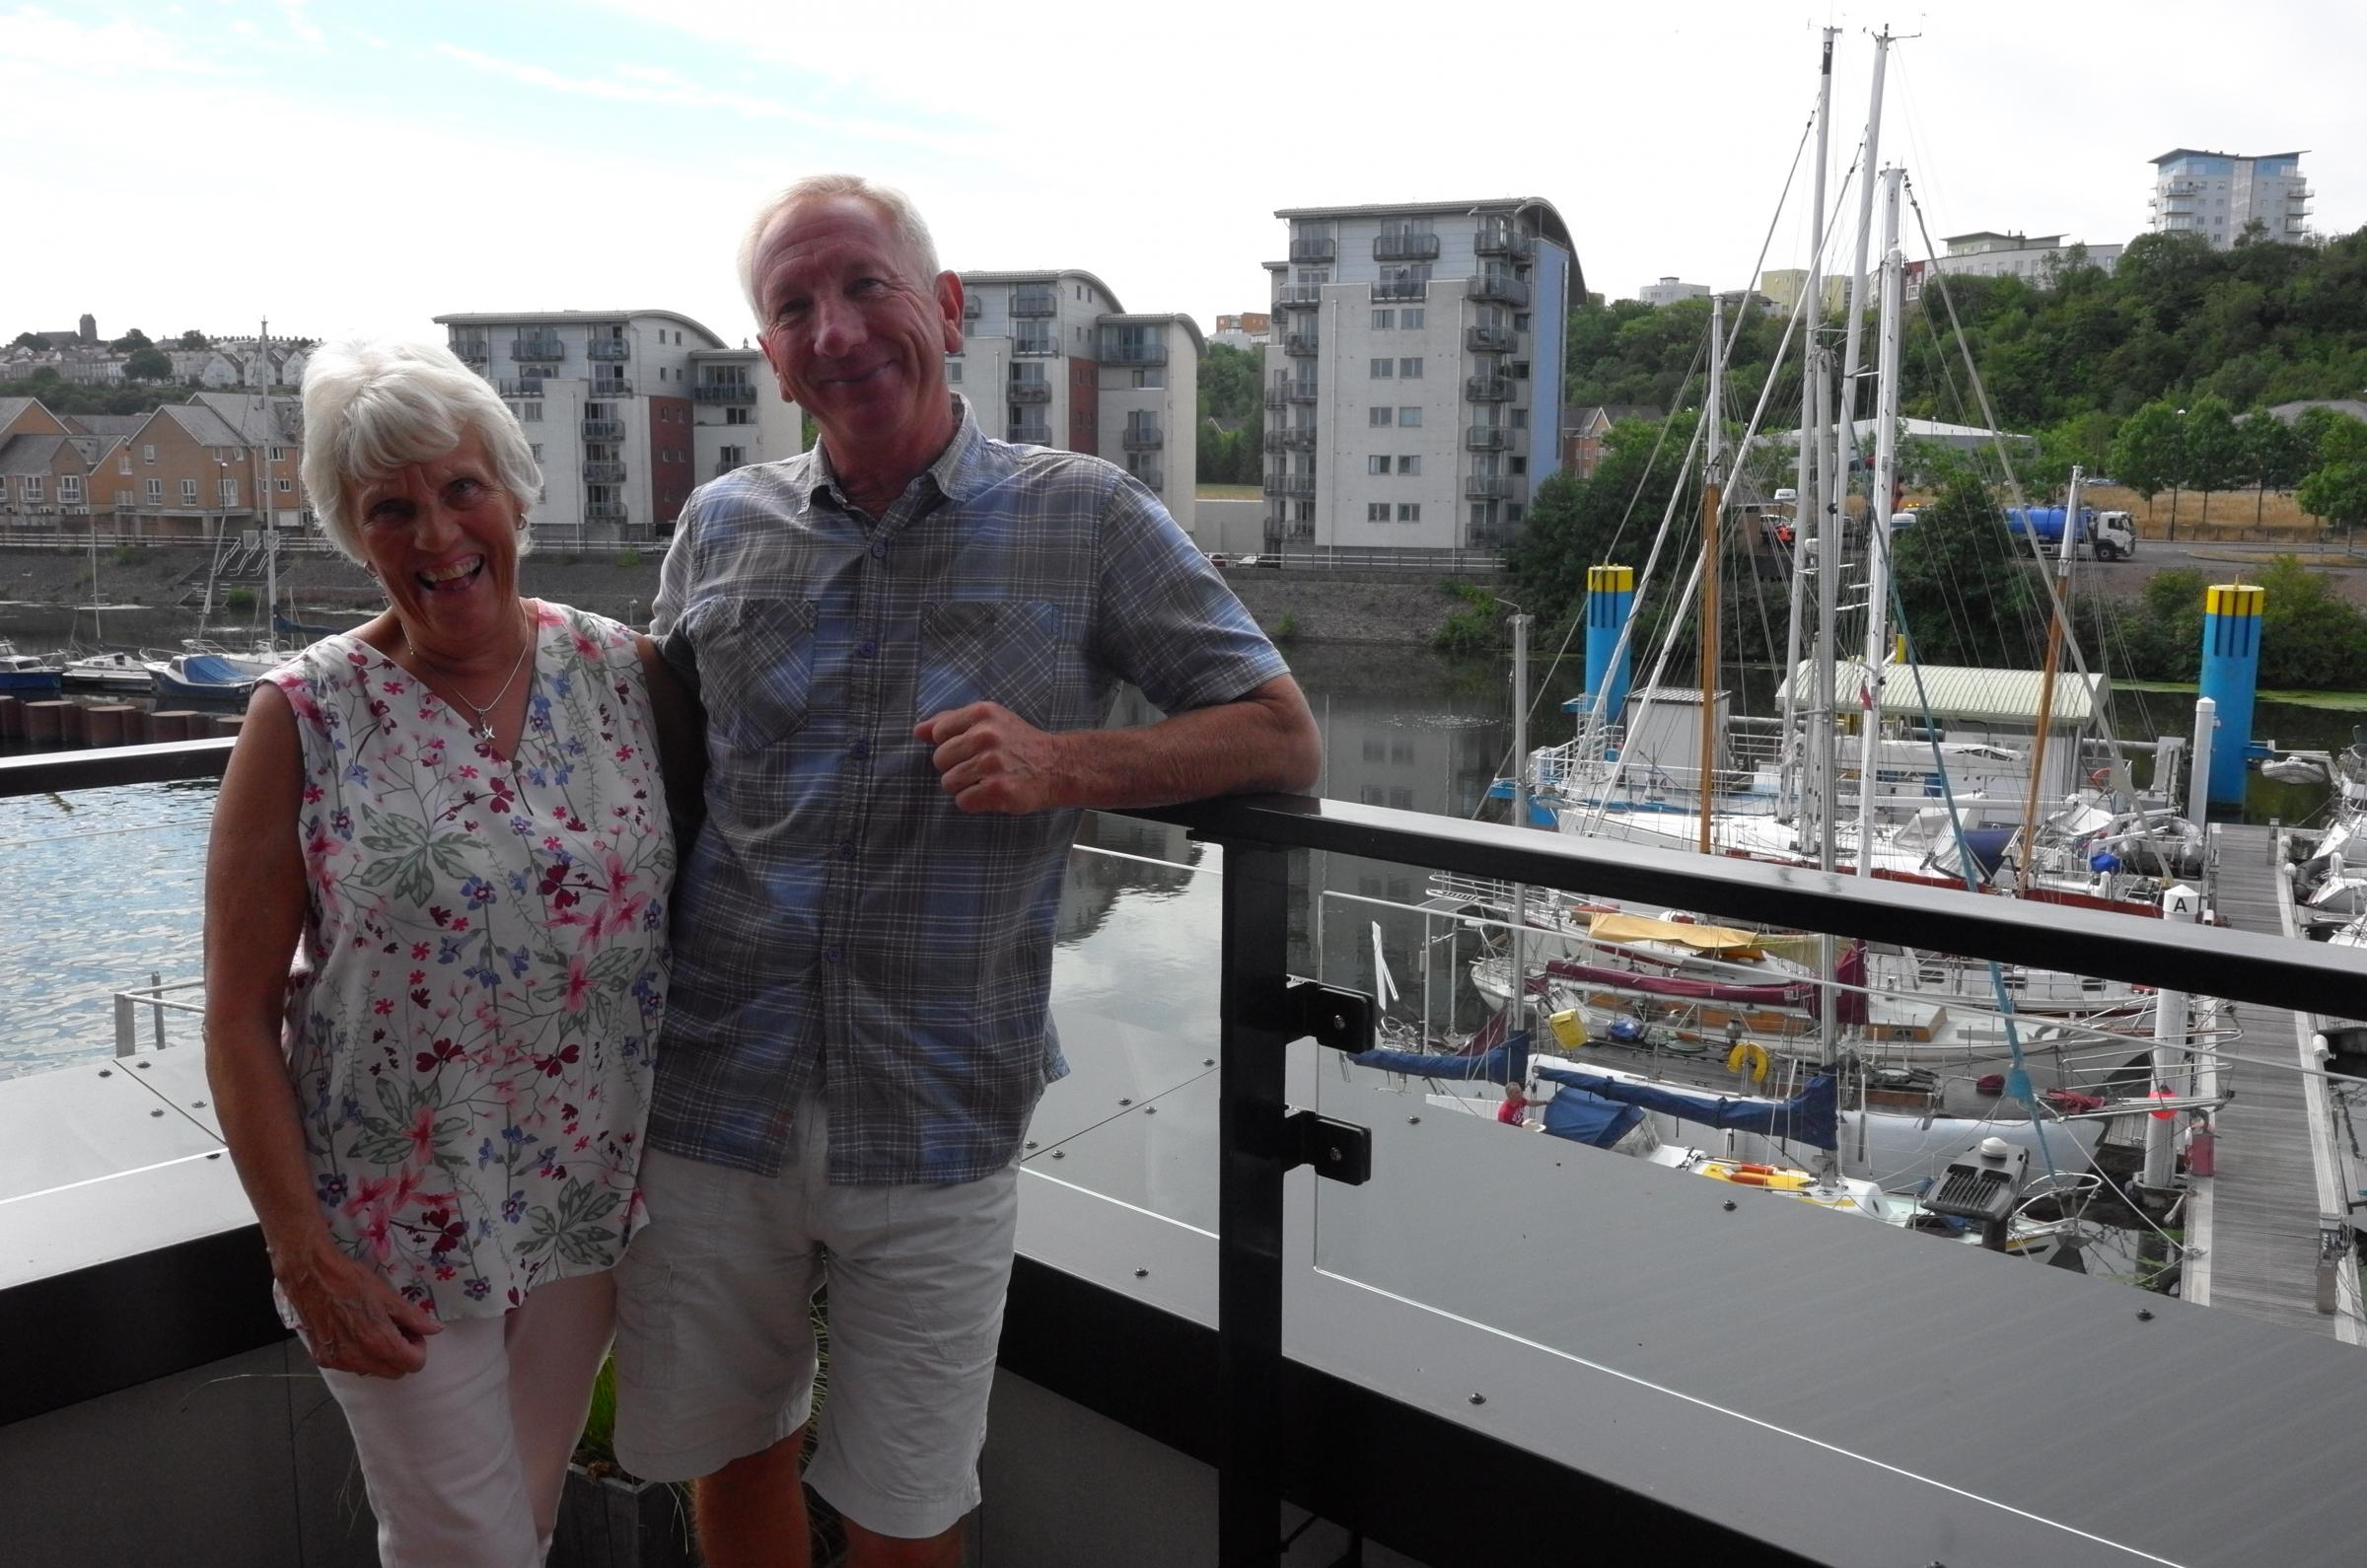 Former Cardiff Marina boatyard owner gets new home